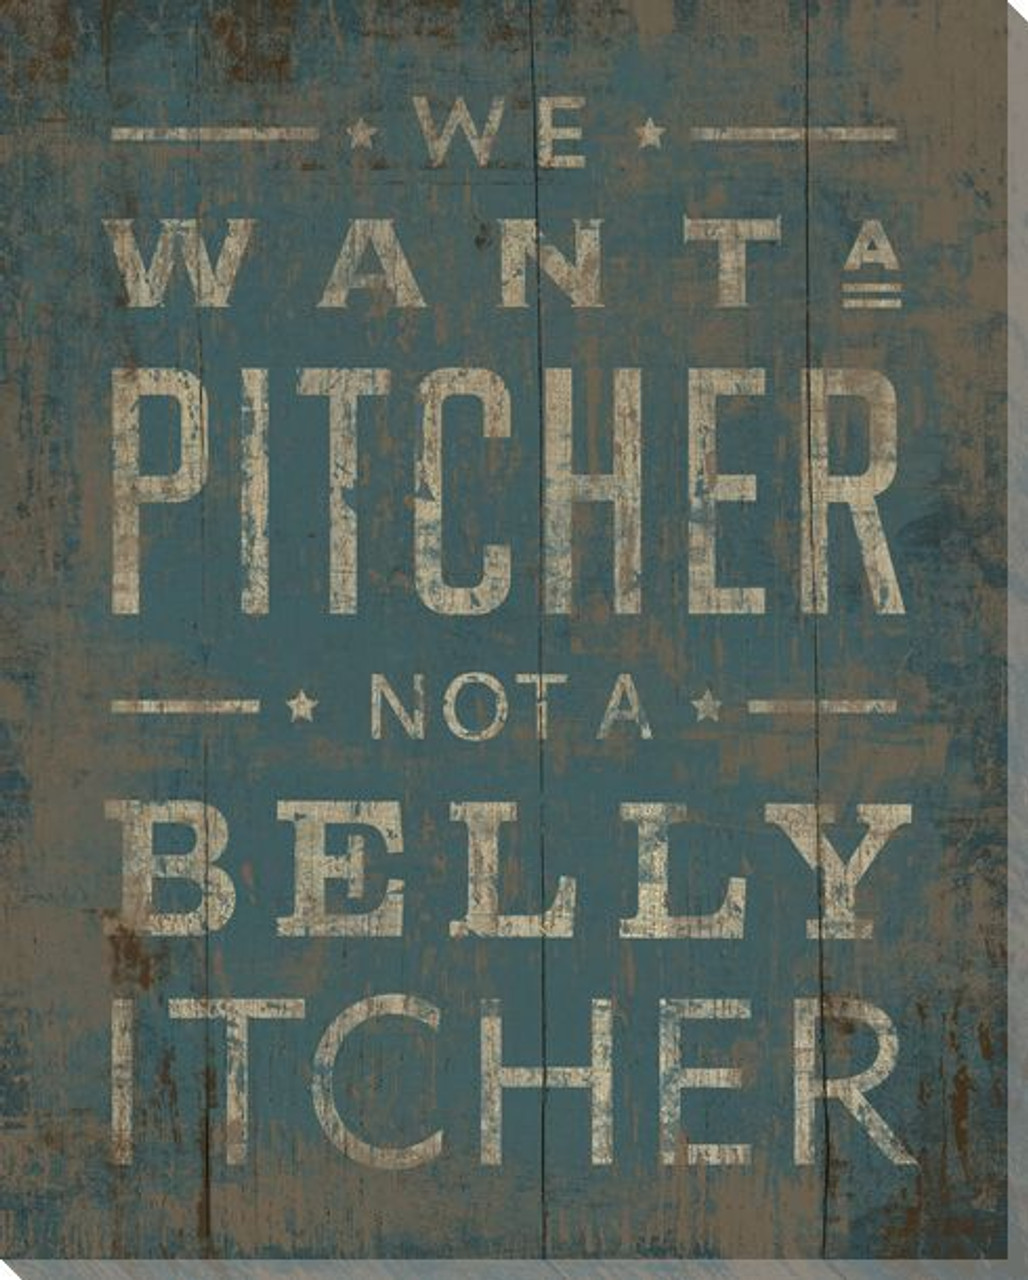 we-want-a-pitcher-not-a-belly-itcher-wra